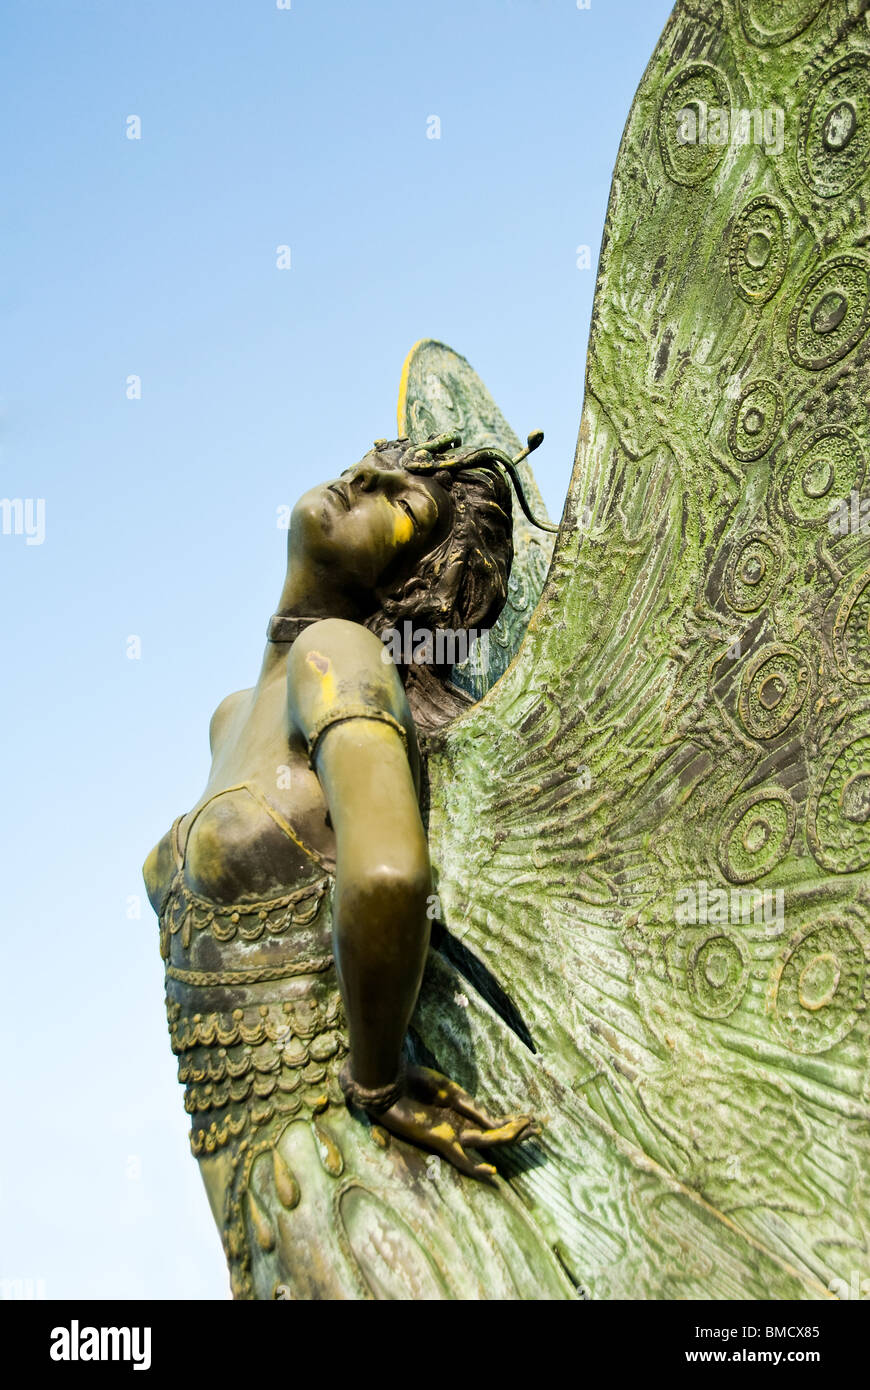 The Butterfly Lady, bronze sculpture by August Moreau in the Theater and Arts District of Sarasota, Florida, USA - Stock Image